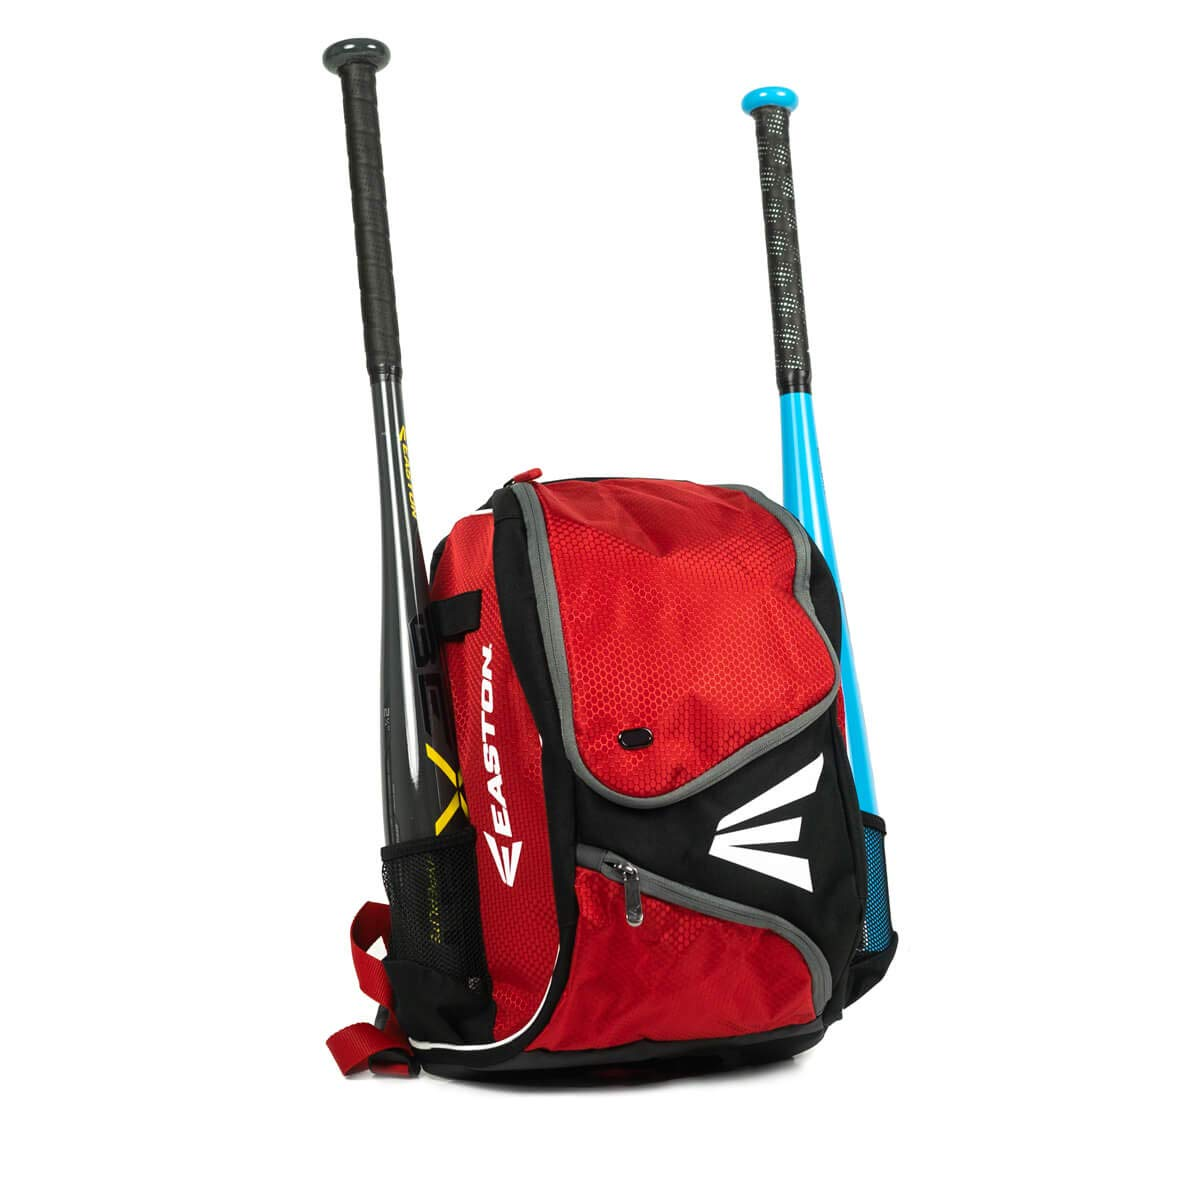 Easton E110YBP Youth Bat Pack (Solid Red) by Easton